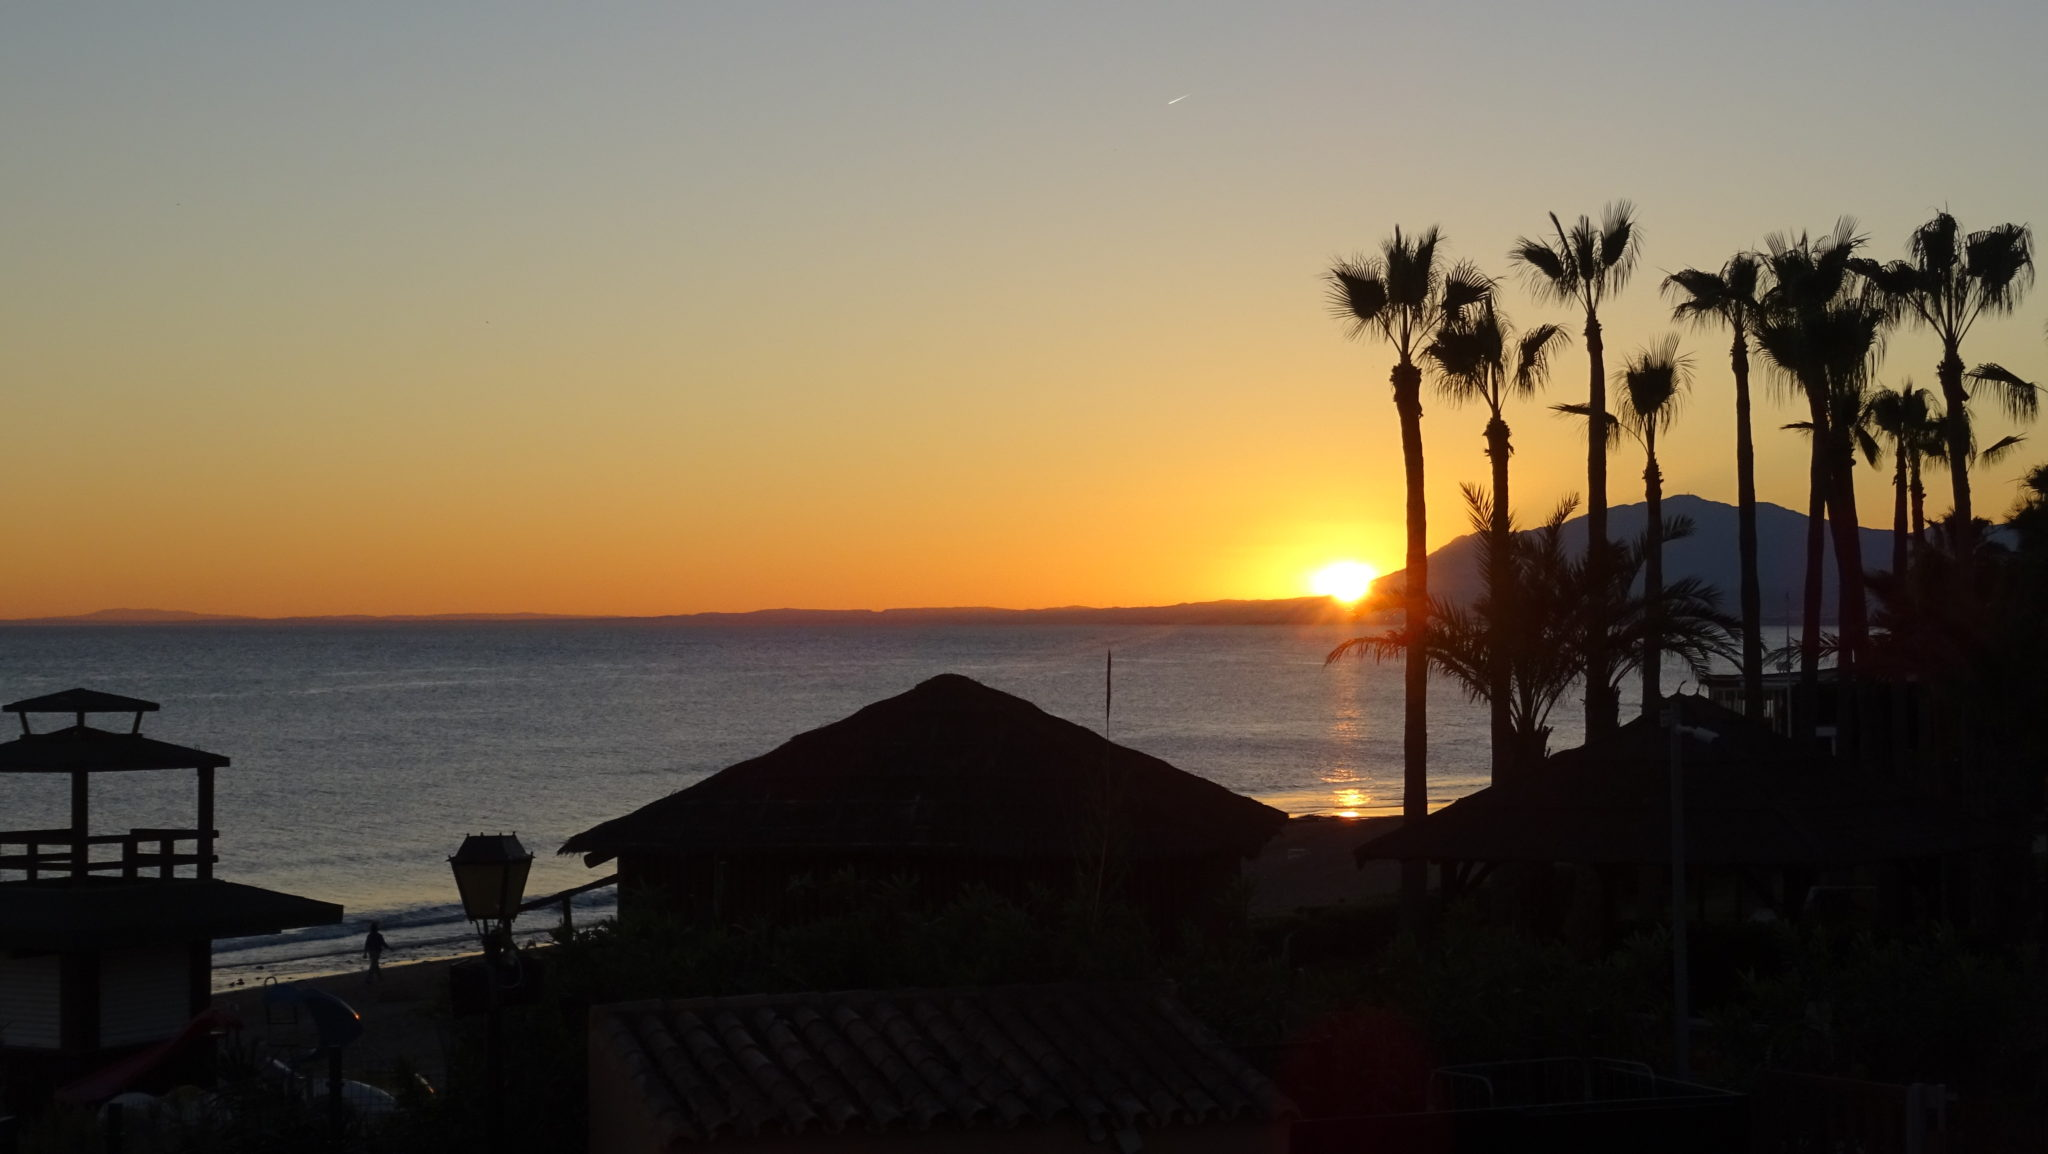 Sunset across the sea from Marriott Beach Resort Marbella Spain